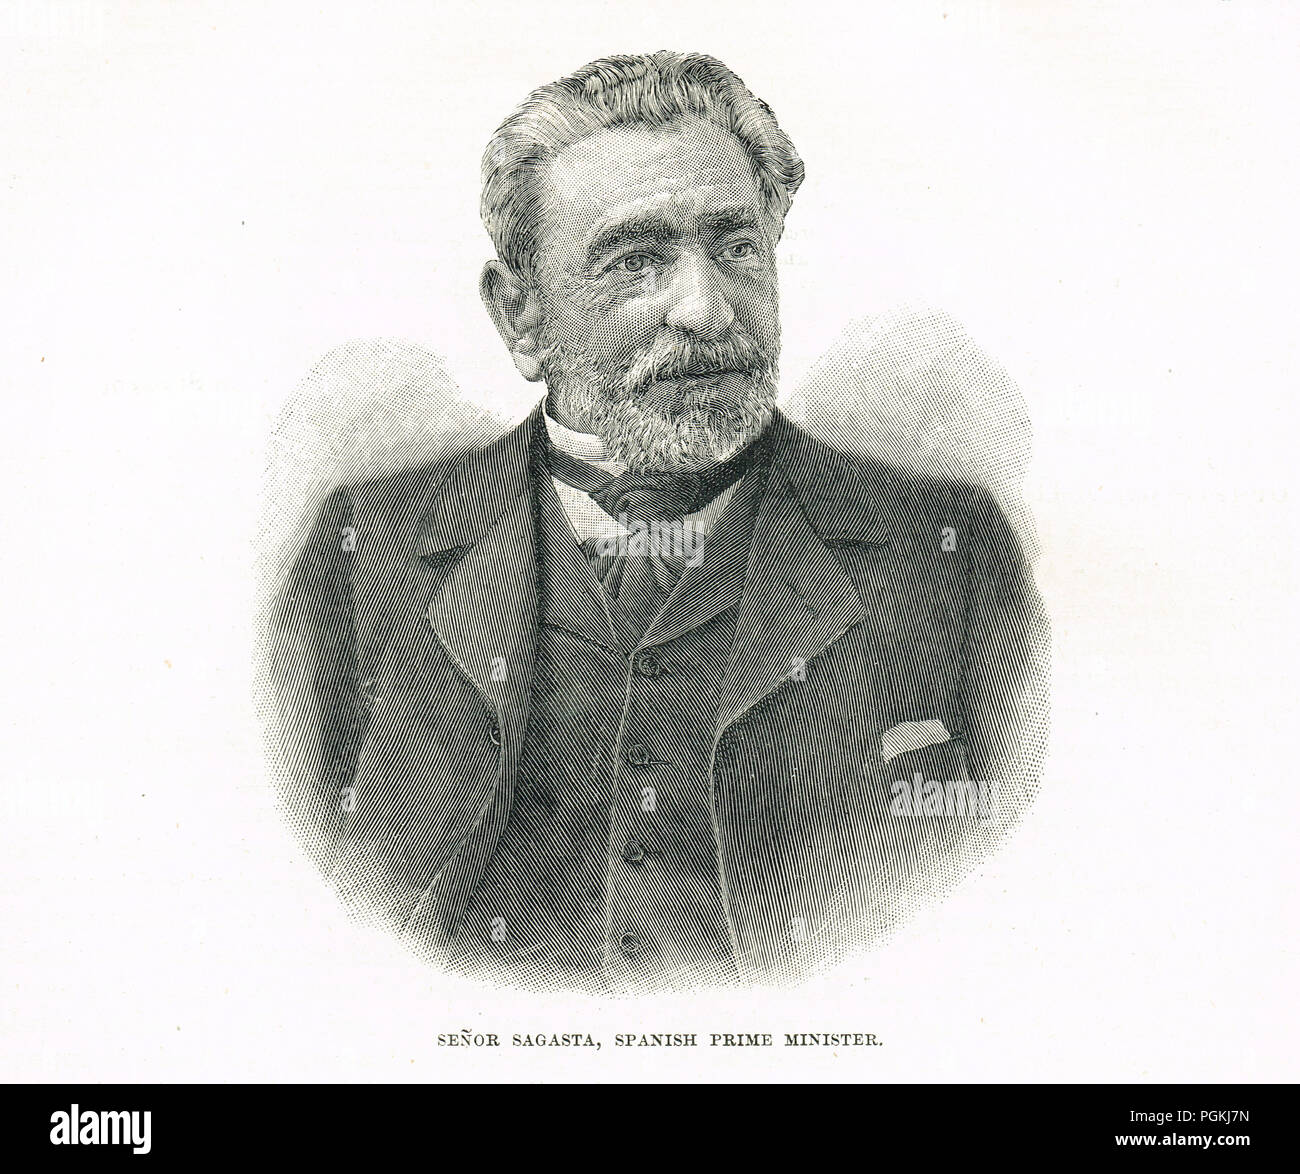 Práxedes Mariano Mateo Sagasta y Escolar, Prime Minister of Spain during the Spanish–American War of 1898, during which time Spain lost its remaining colonies - Stock Image